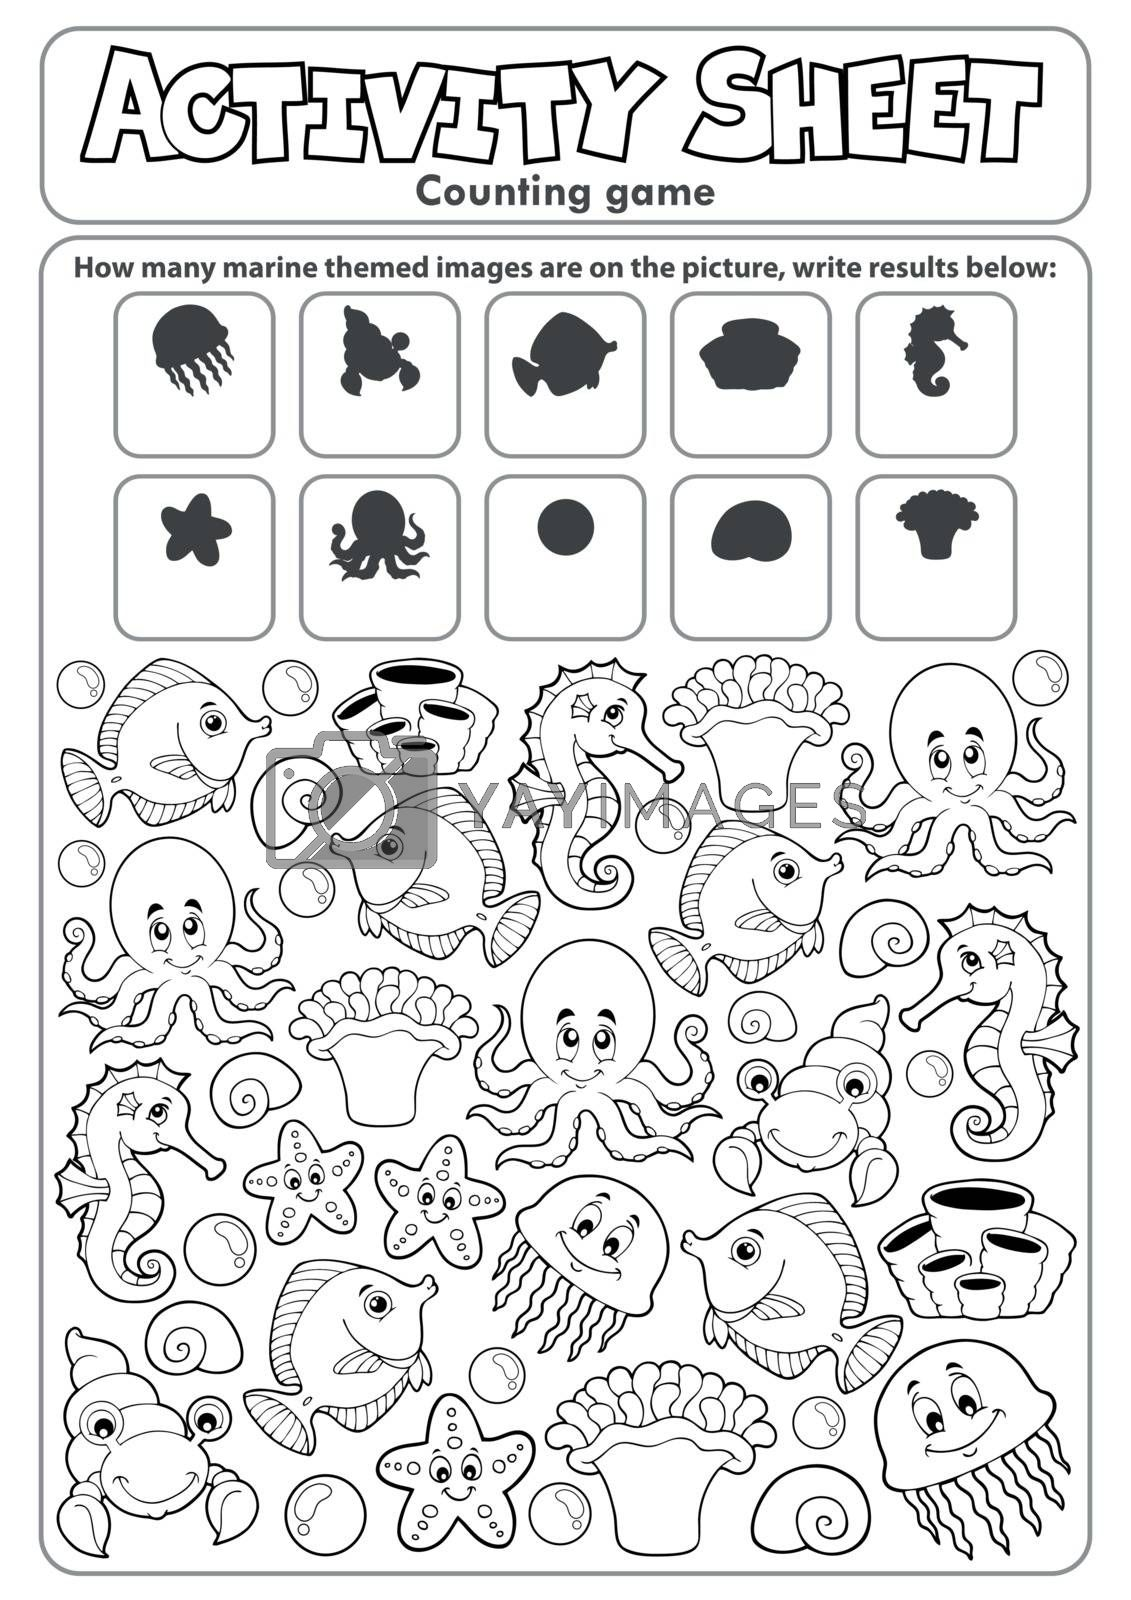 Activity sheet counting game topic 2 - eps10 vector illustration.